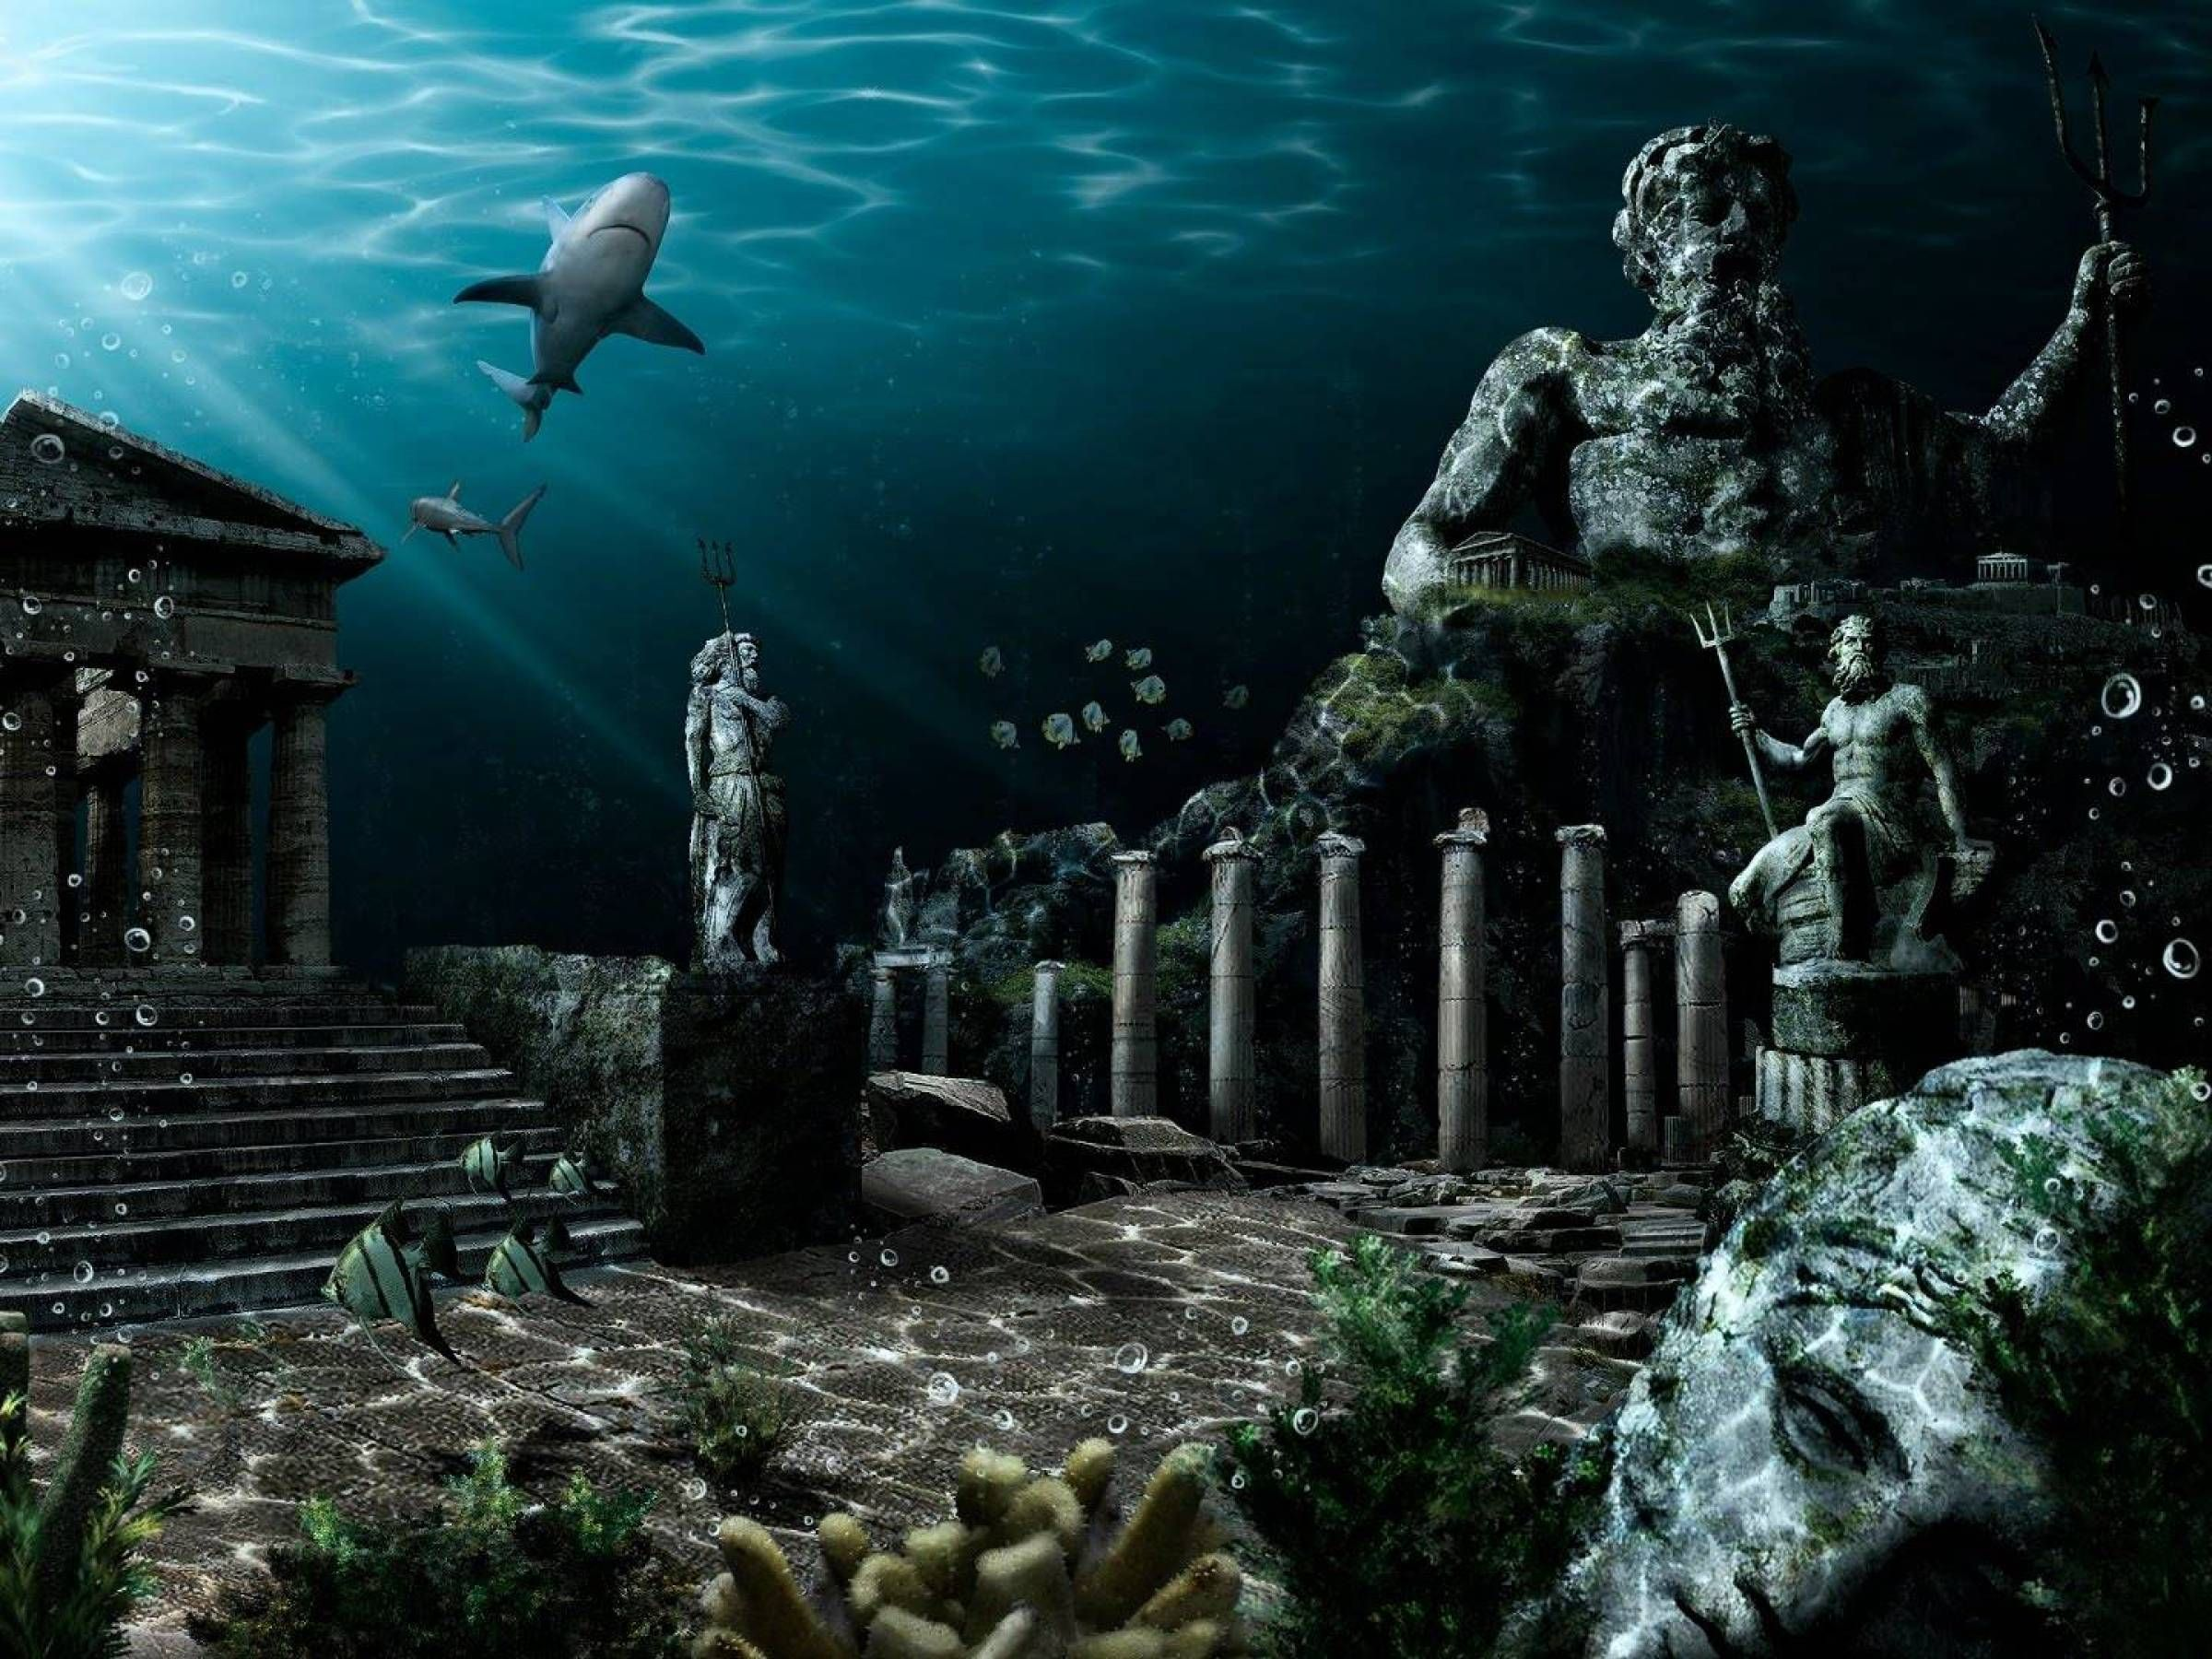 a research on the lost city of atlantis Speedyhunts mission is lost city of atlantis research papers to give people easy and affordable access to public record information when it comes to essay writing, an in-depth research is a.